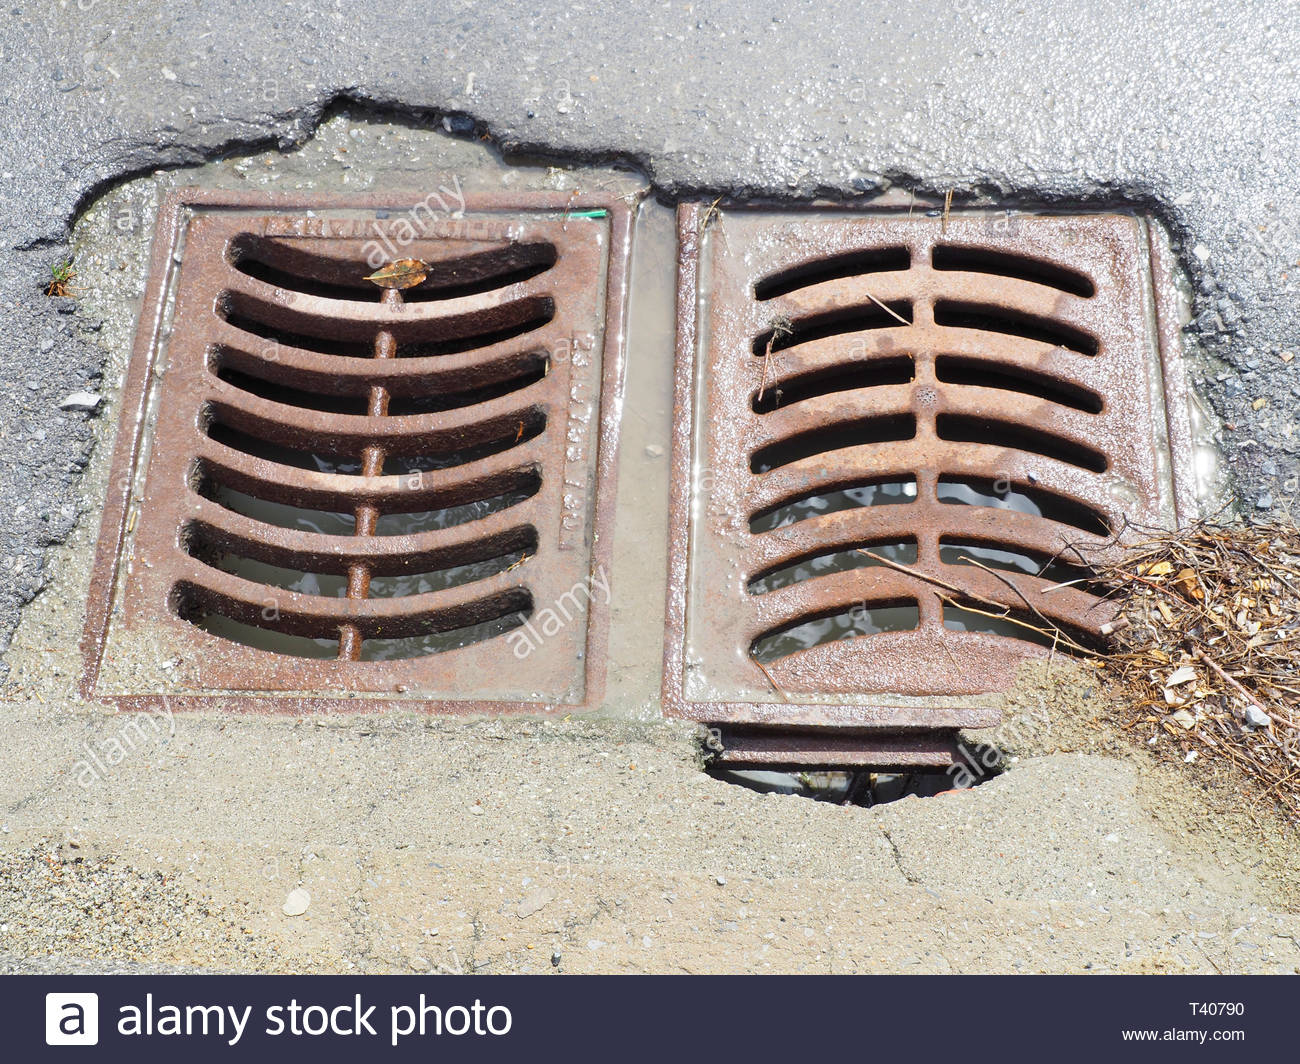 Storm Water Drainage Stock Photos & Storm Water Drainage